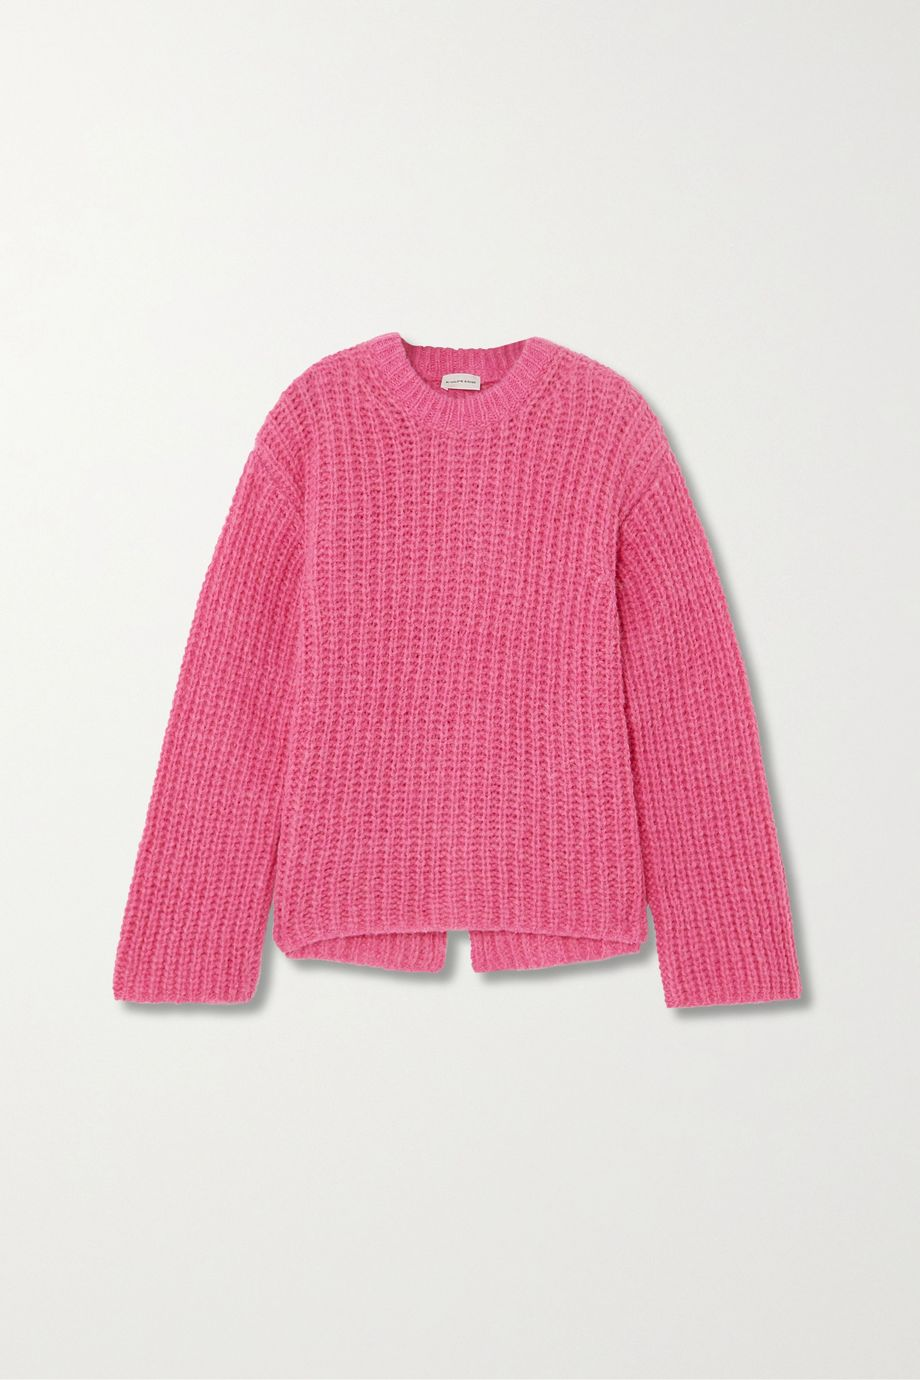 By Malene Birger + NET SUSTAIN Nosema open-back alpaca-blend sweater